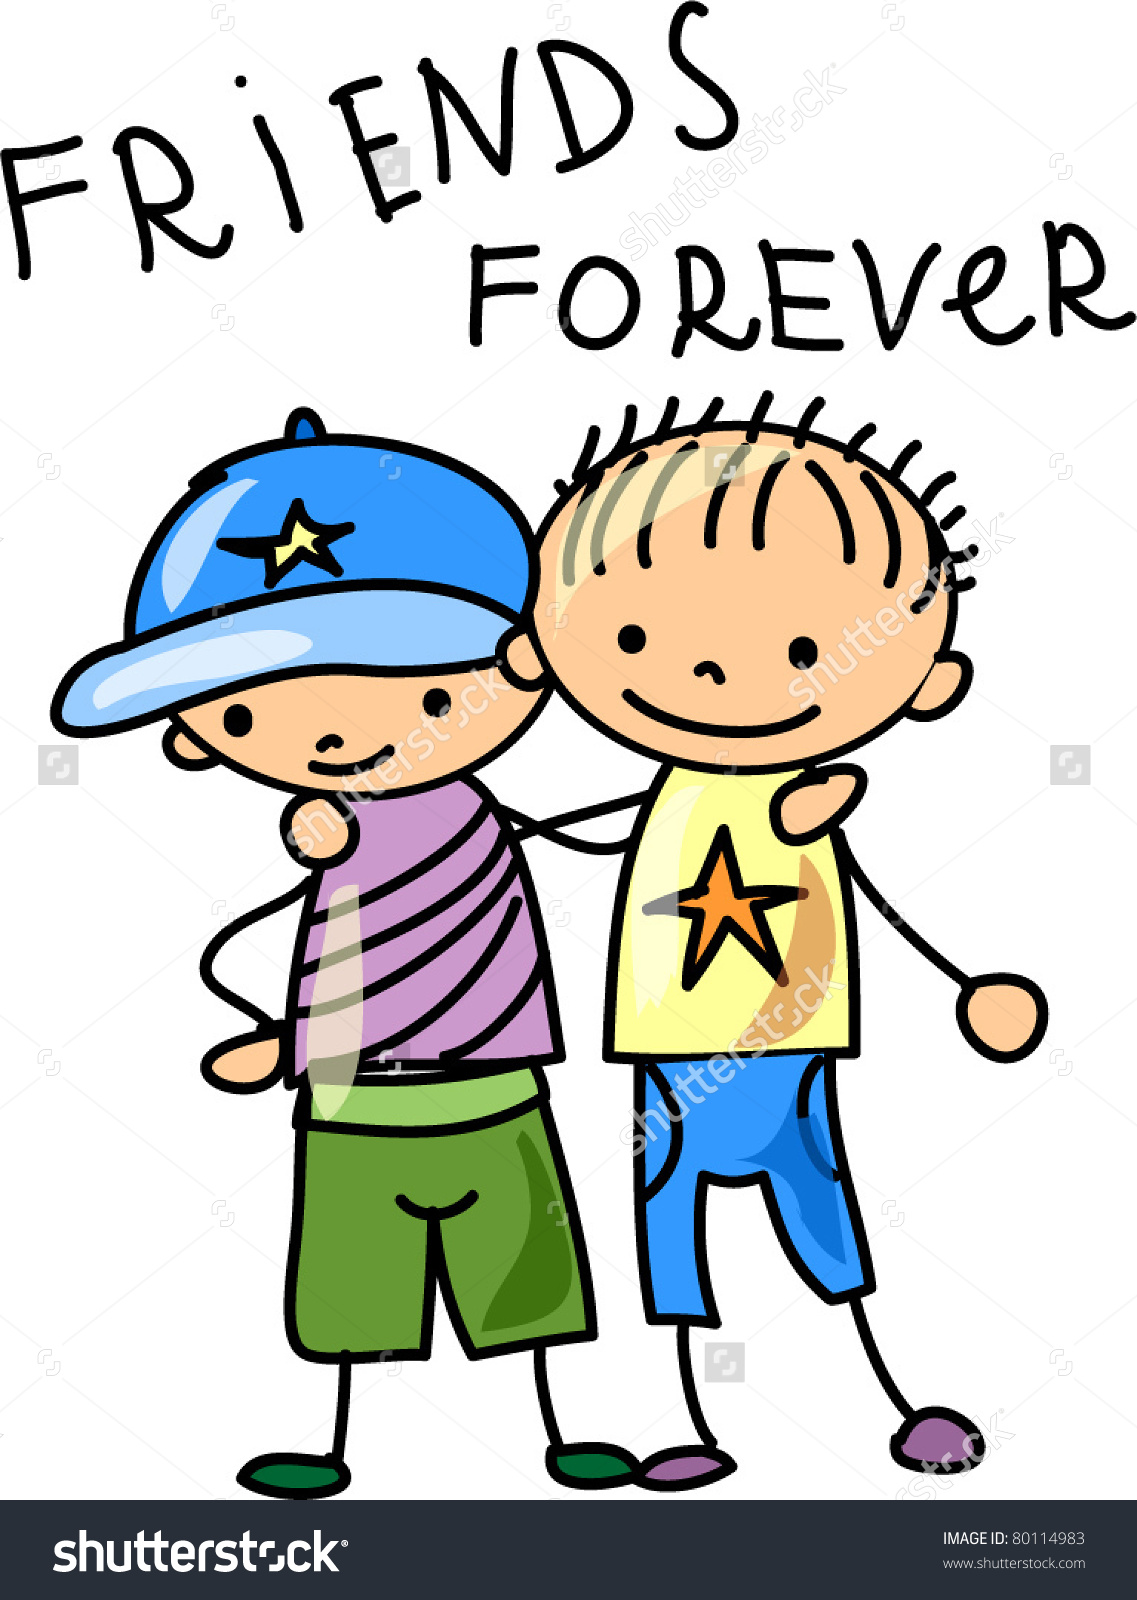 Library Of Best Friends Forever Images Free Stock